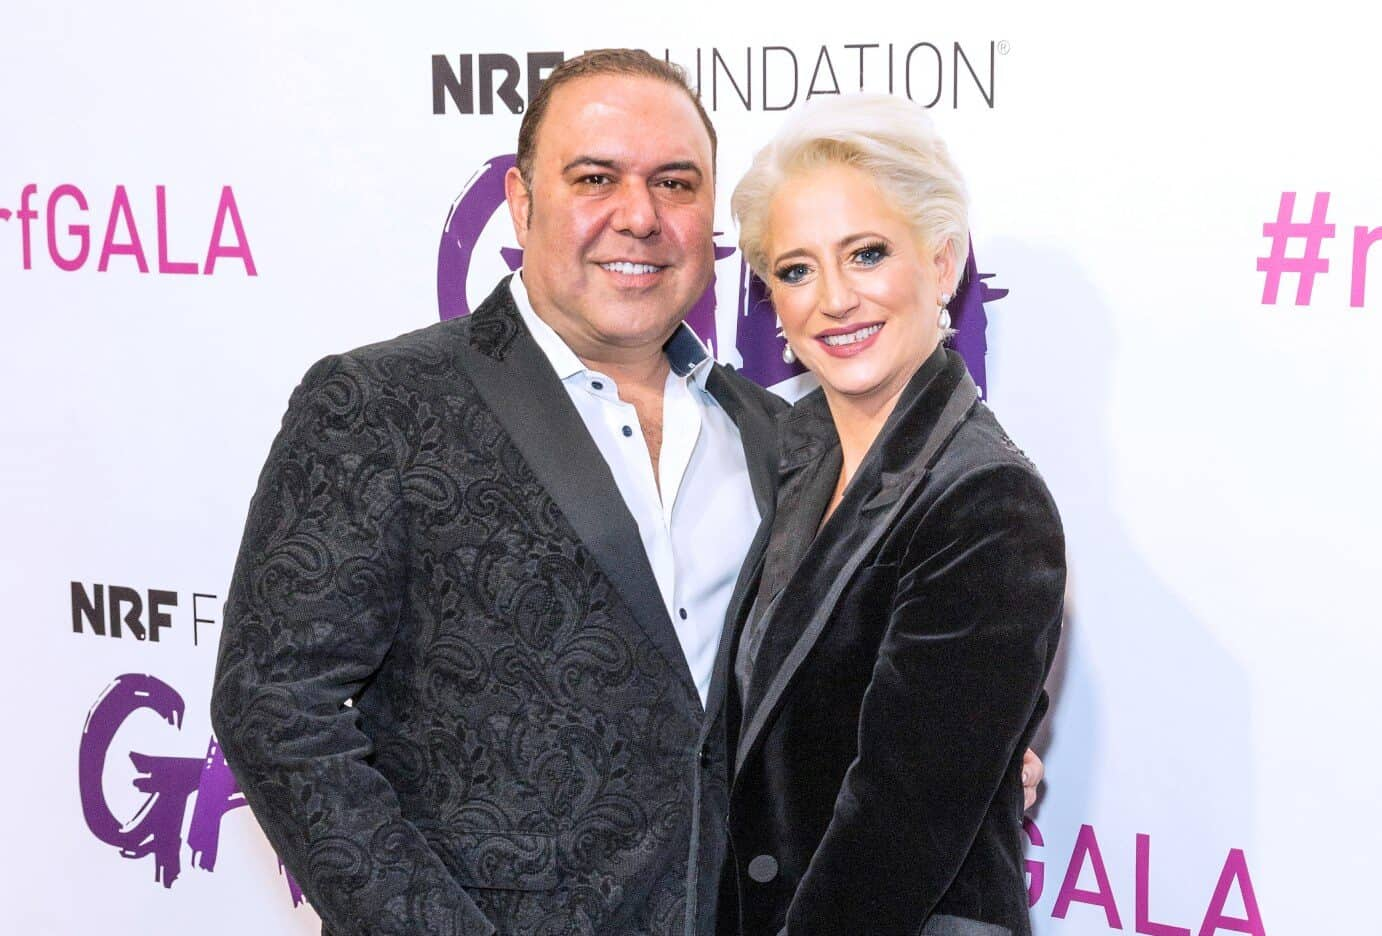 """RHONY Star Dorinda Medley Opens Up About Splitting From Boyfriend John Mahdessian After Seven Years, Admits the Breakup Was """"Terrible"""""""